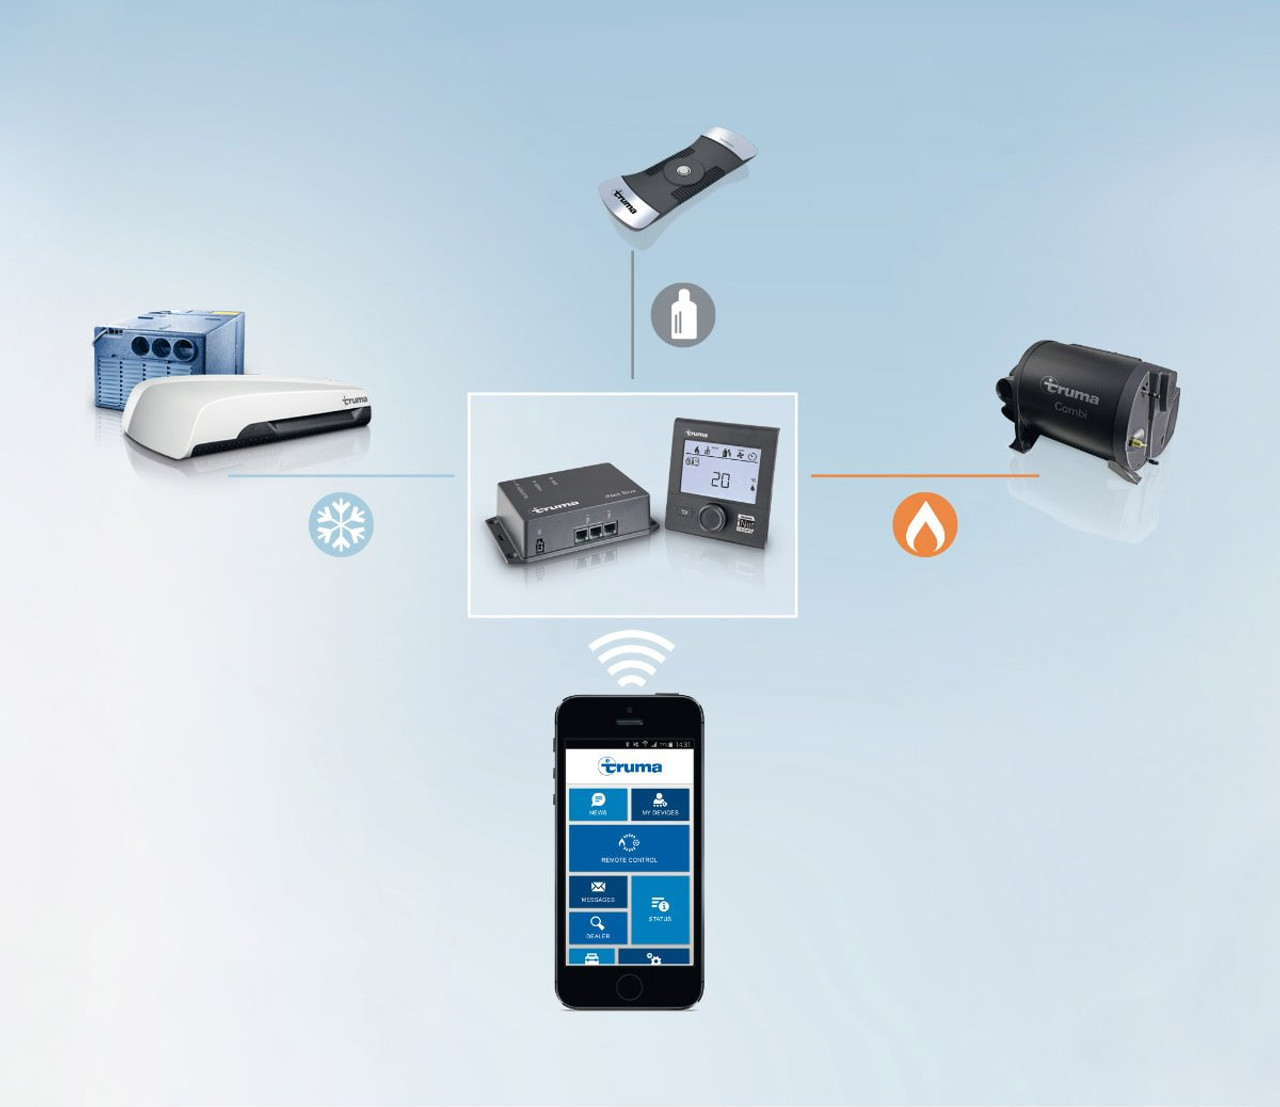 The Truma LevelControl connects to your phone via Truma iNet